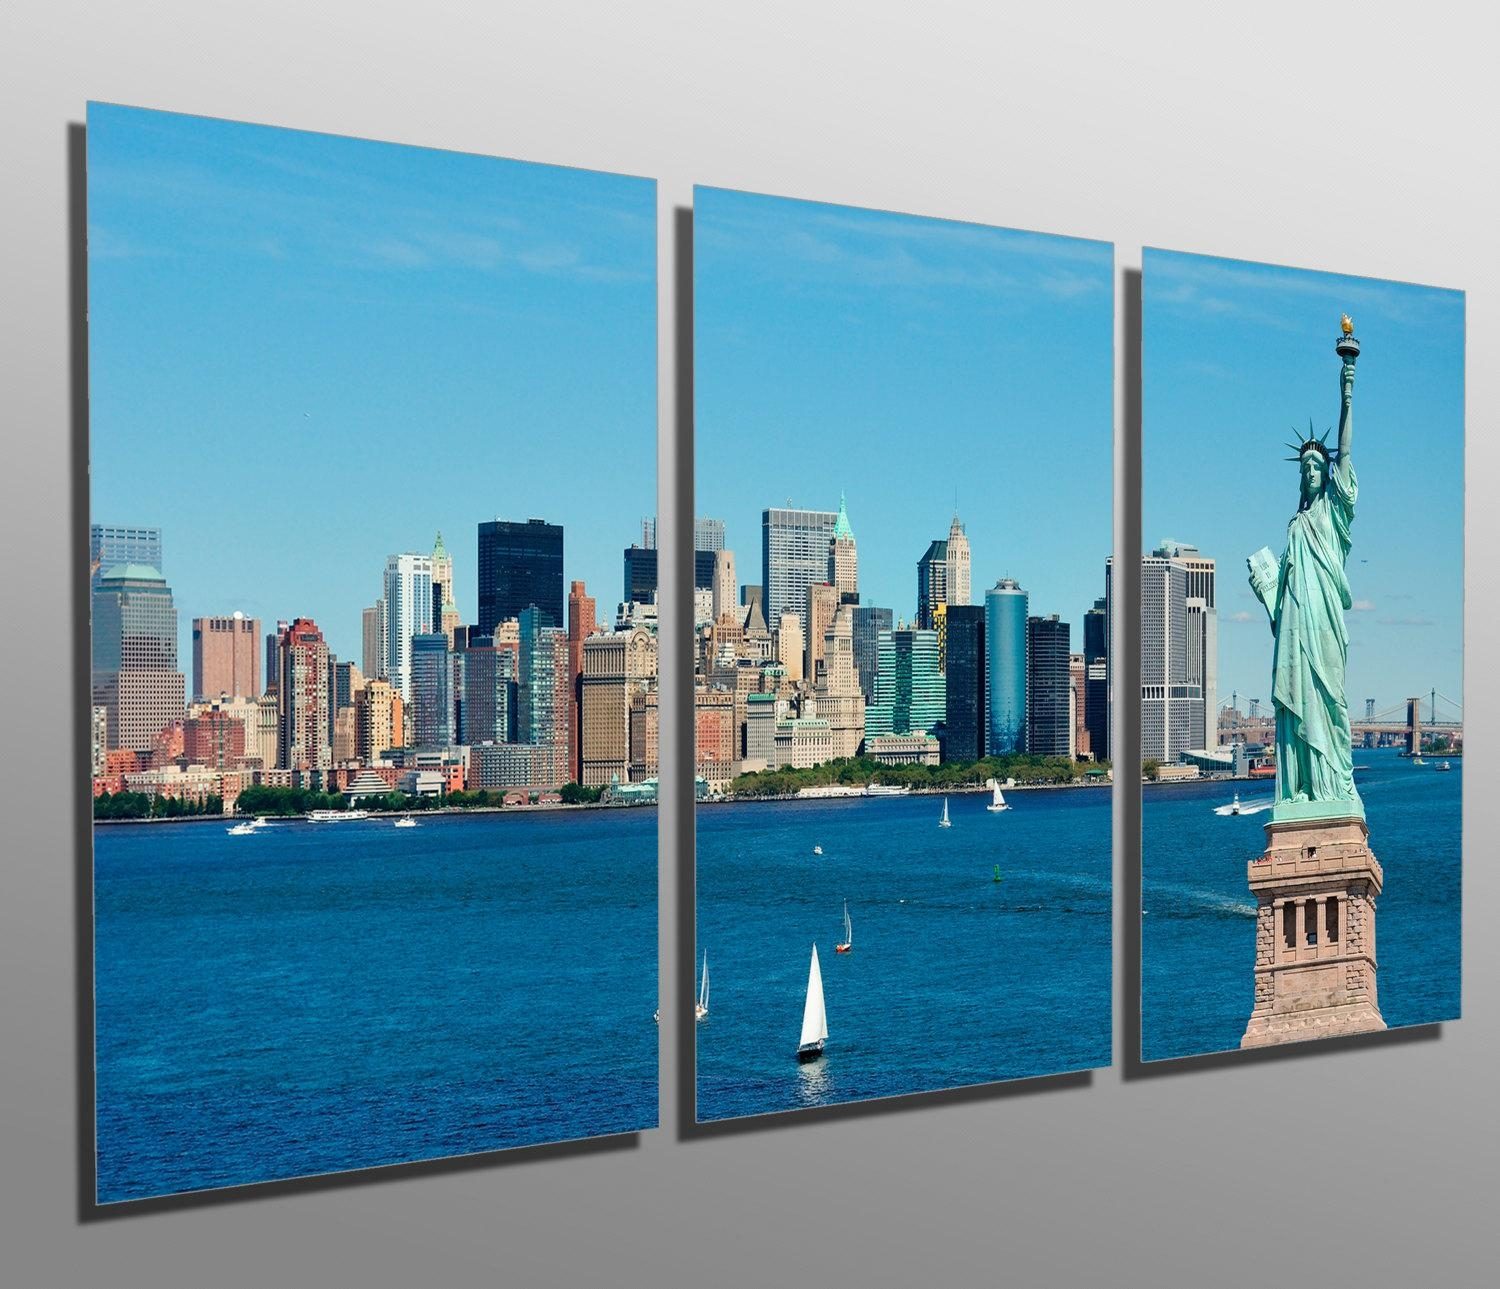 Metal Prints New York City Skyline 3 Panel Split Intended For Metal Wall Art New York City Skyline (Image 9 of 20)